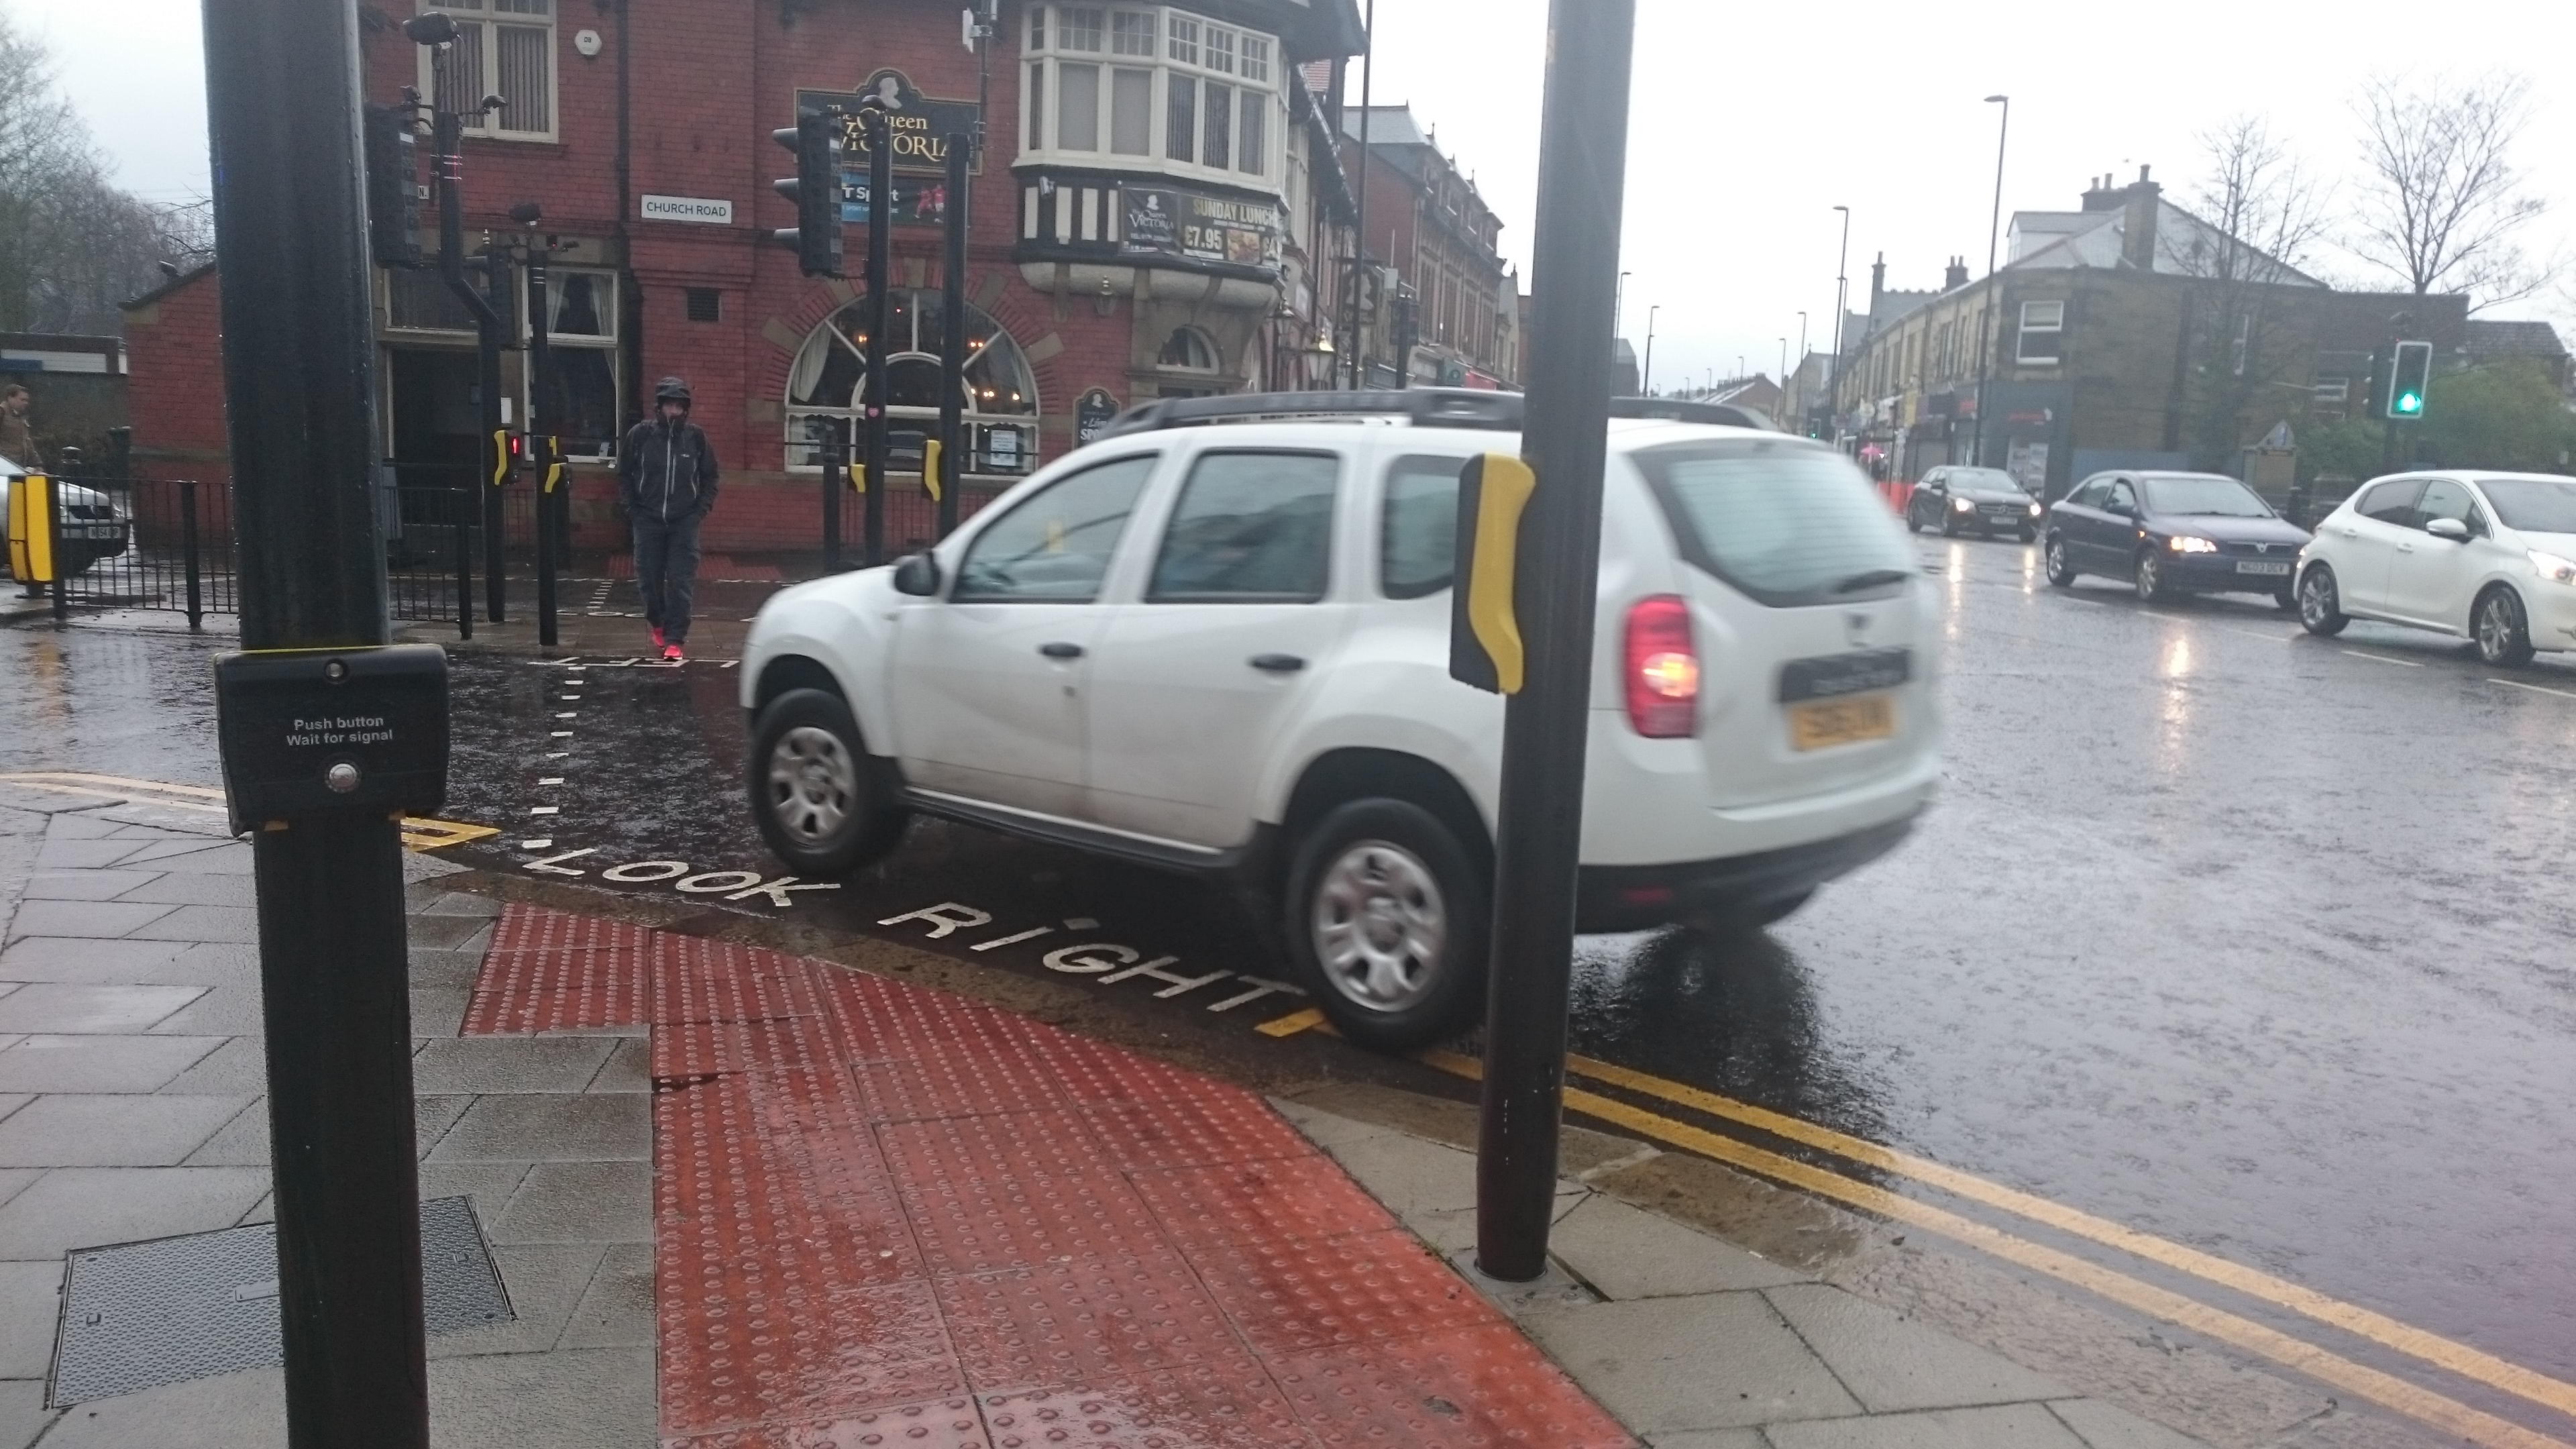 image of crossing across church road heading towards the Queen Victoria pub. Showing the tactile paving and the curved edge of the pavment. Look right is painted on the road. A car is turning across the crossing and is inches away from the pavement edge